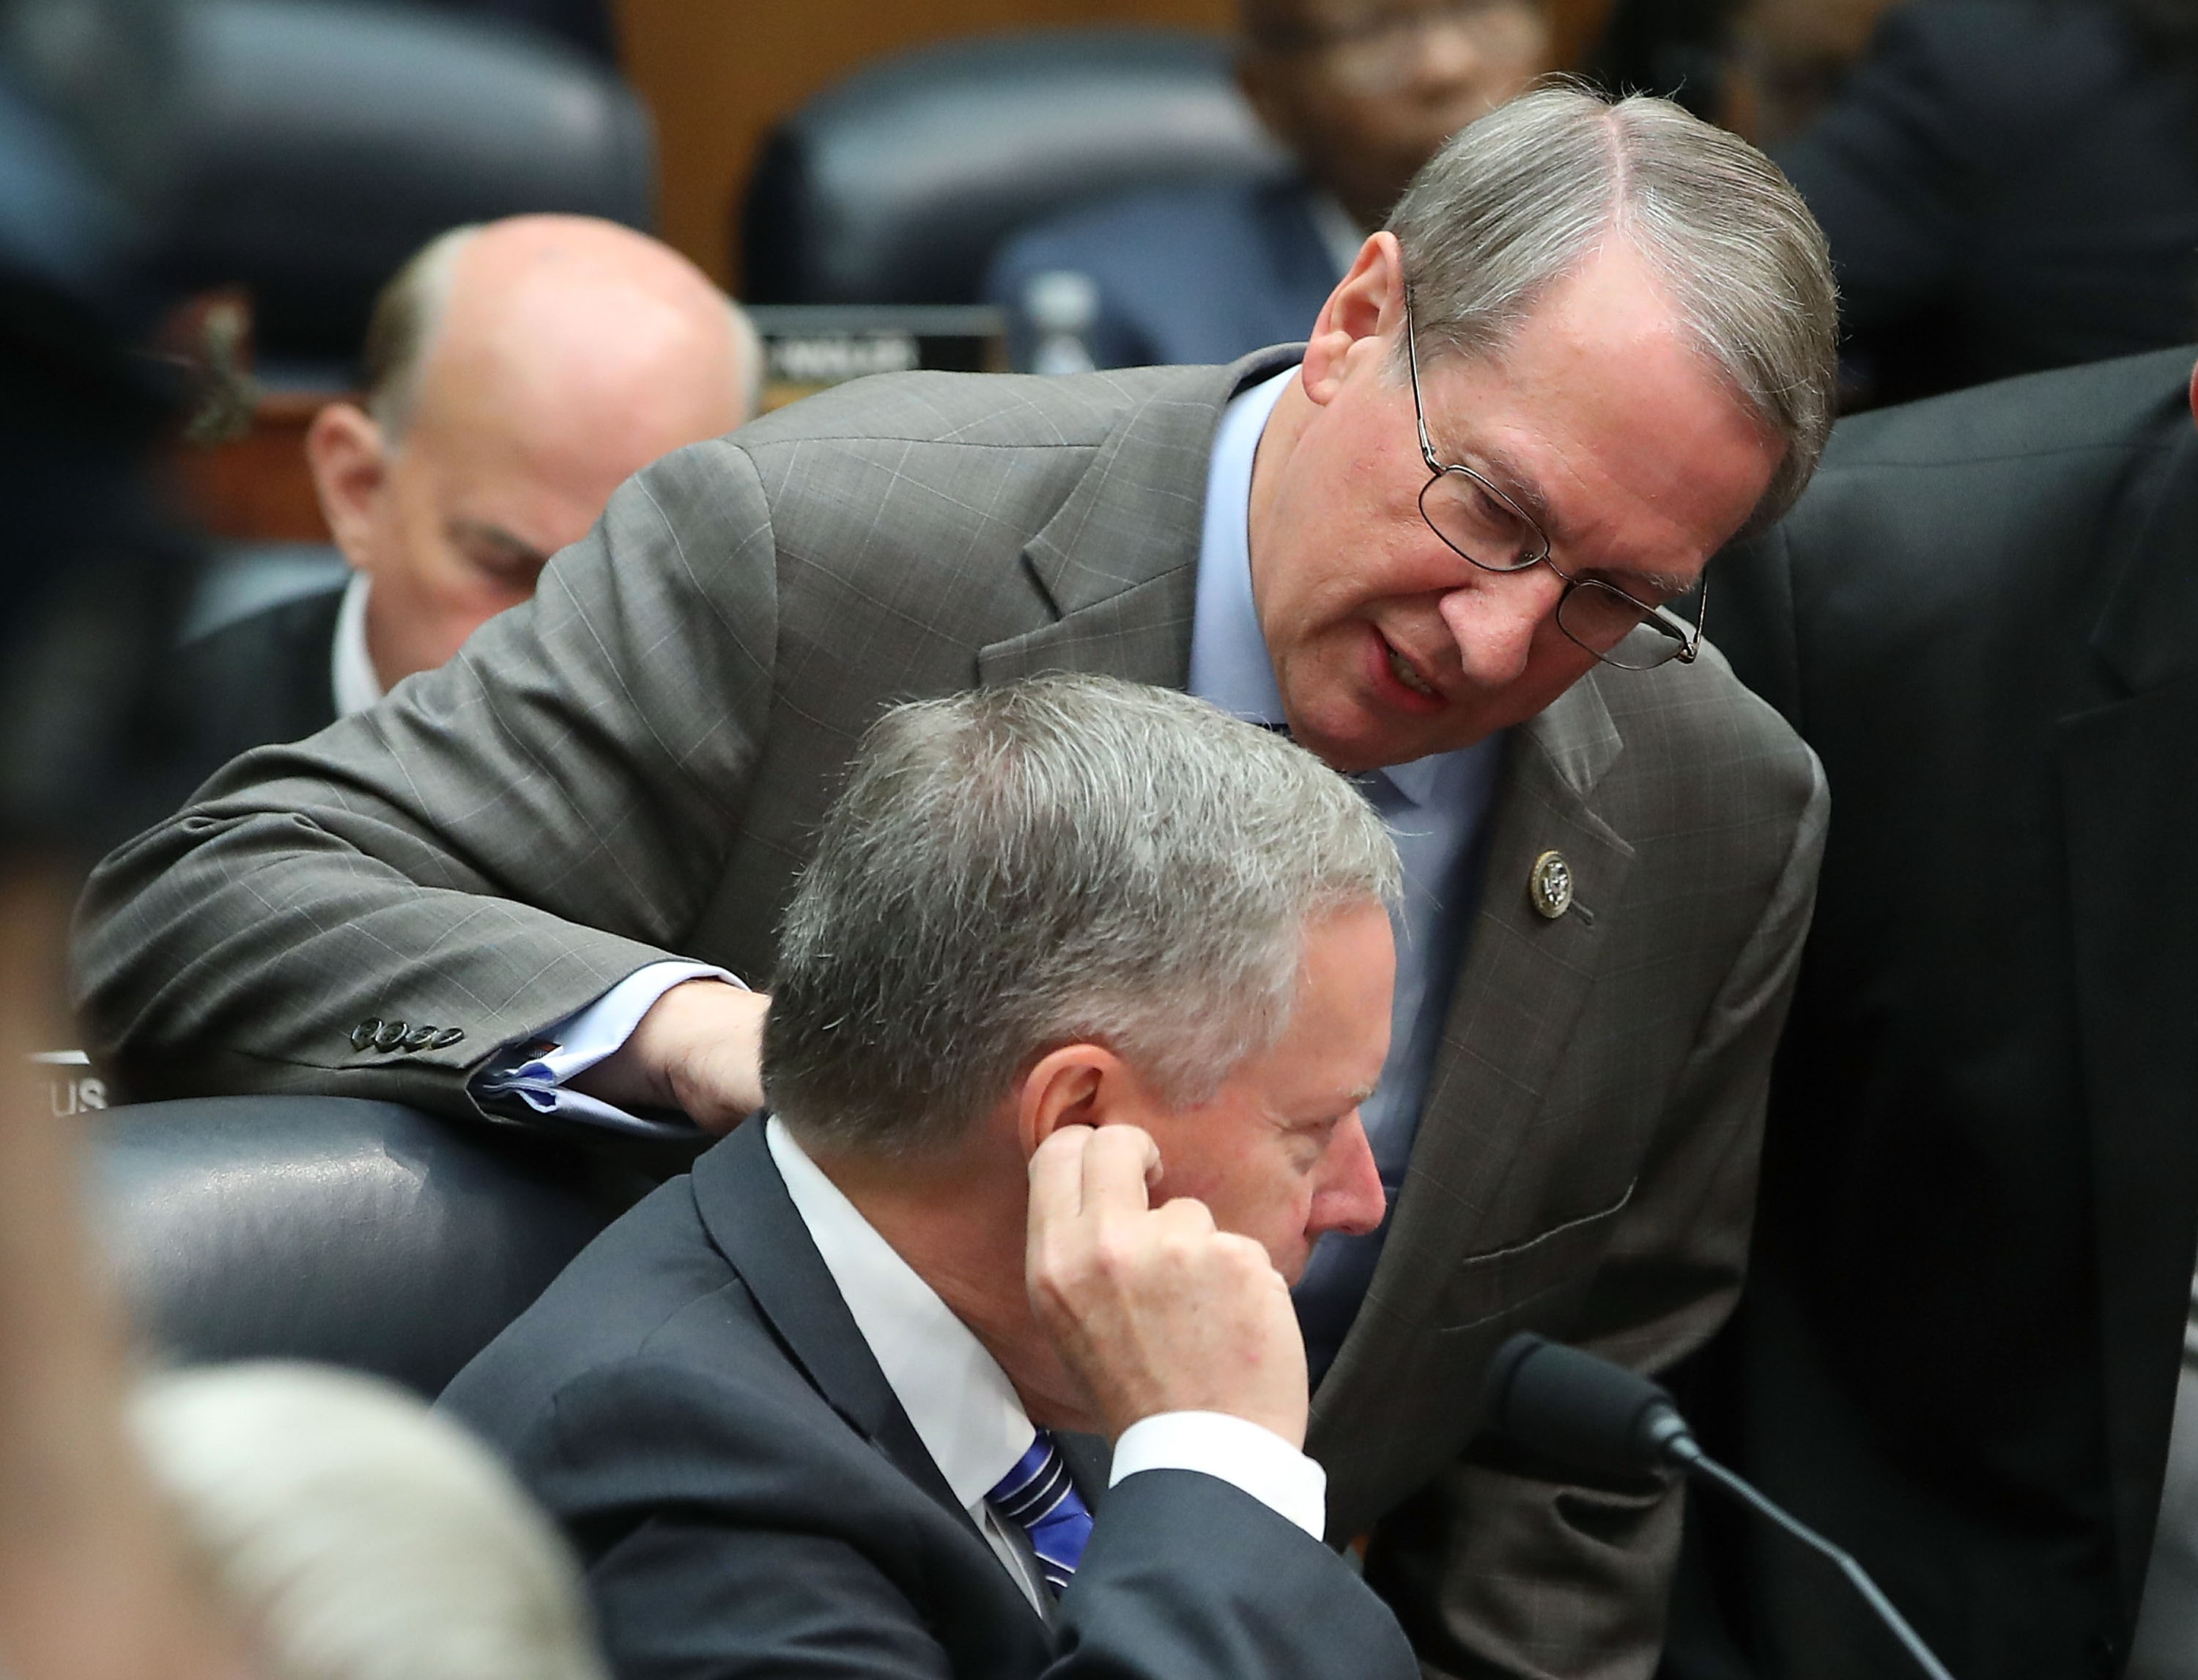 Goodlatte during an earlier hearing into the 2016 election